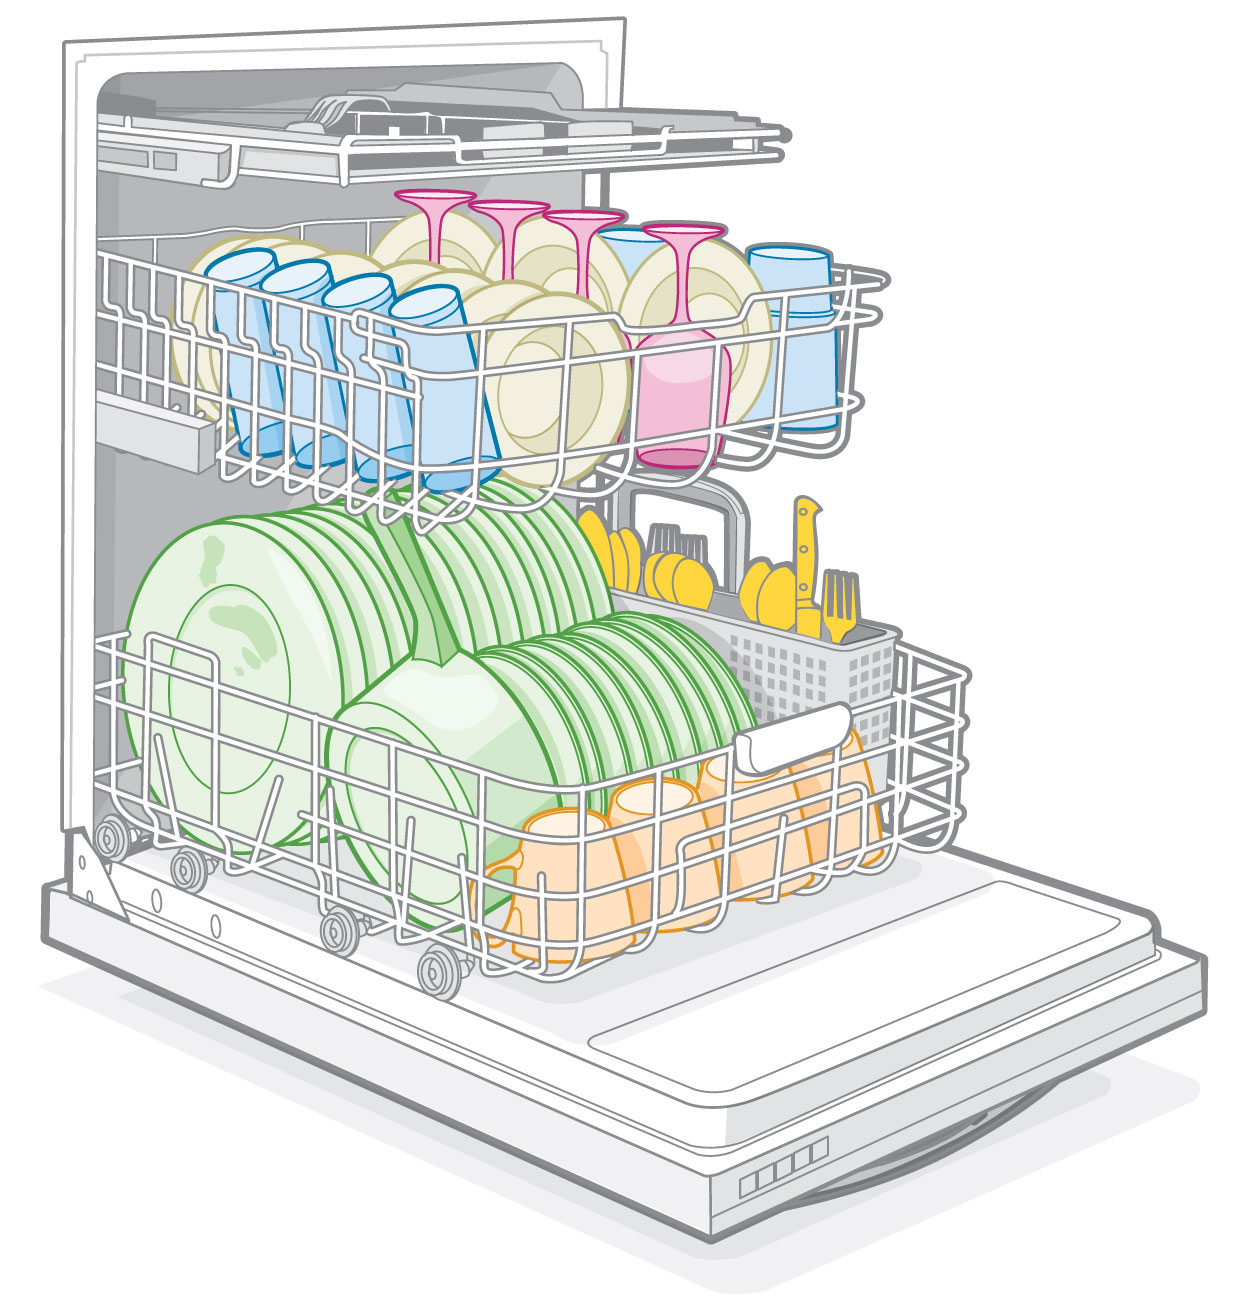 1242x1302 What Sub Zero Learned About Our Dirt When It Built A Dishwasher